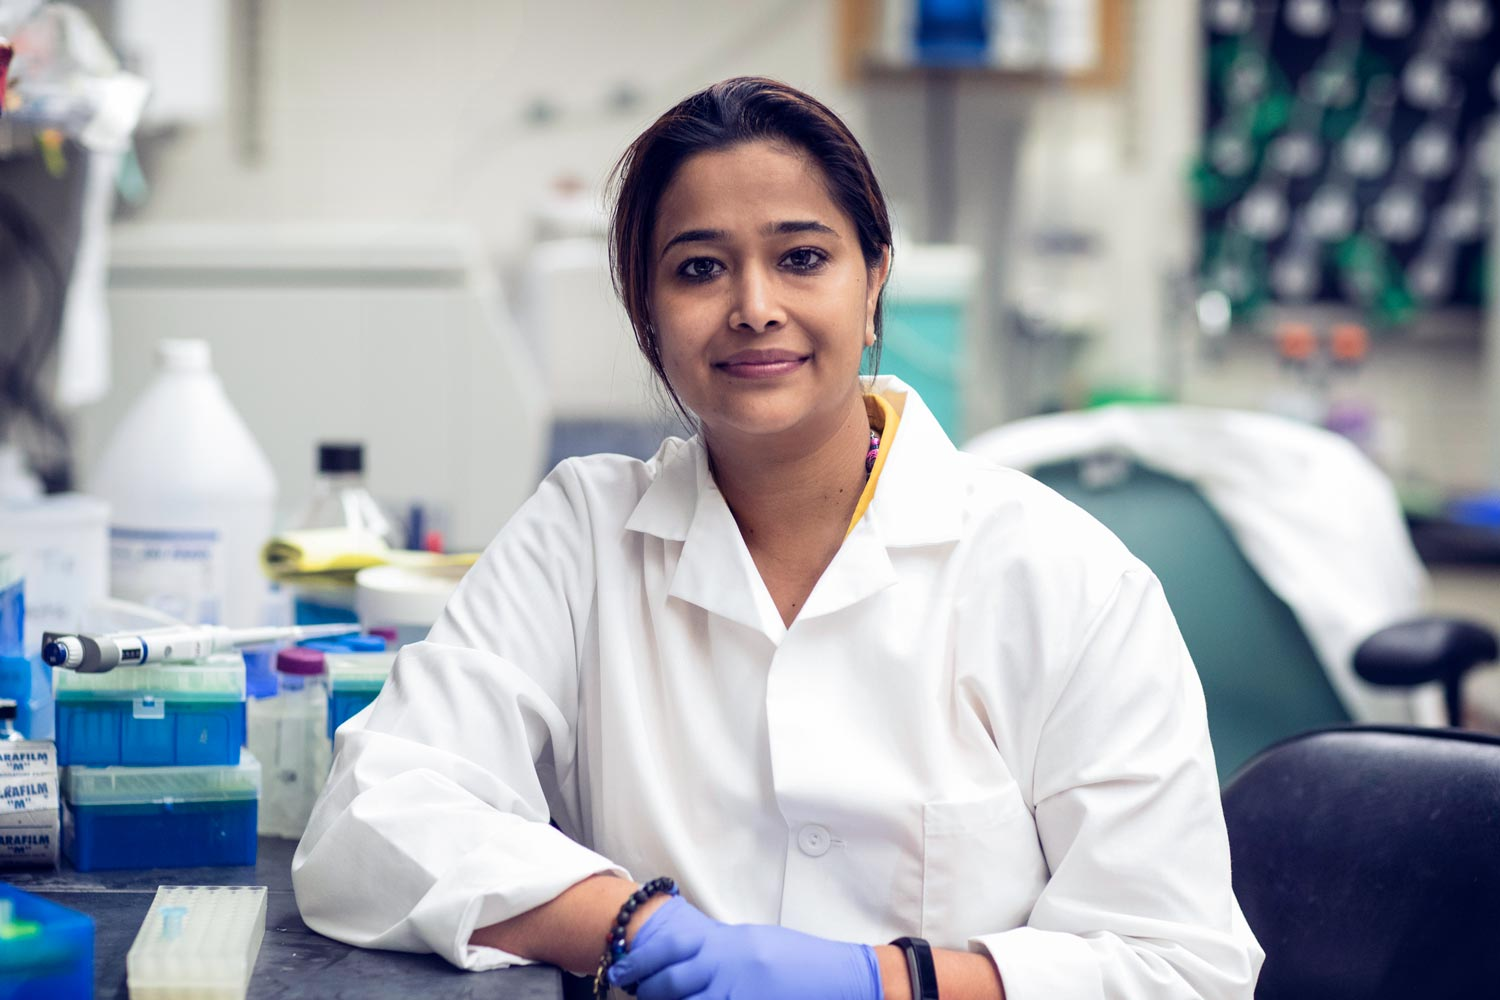 Sanchita Bhatnagar is investigating ways to reactivate healthy-but-inactive chromosomes, in an effort to repair brain damage that has been thought to be permanent.